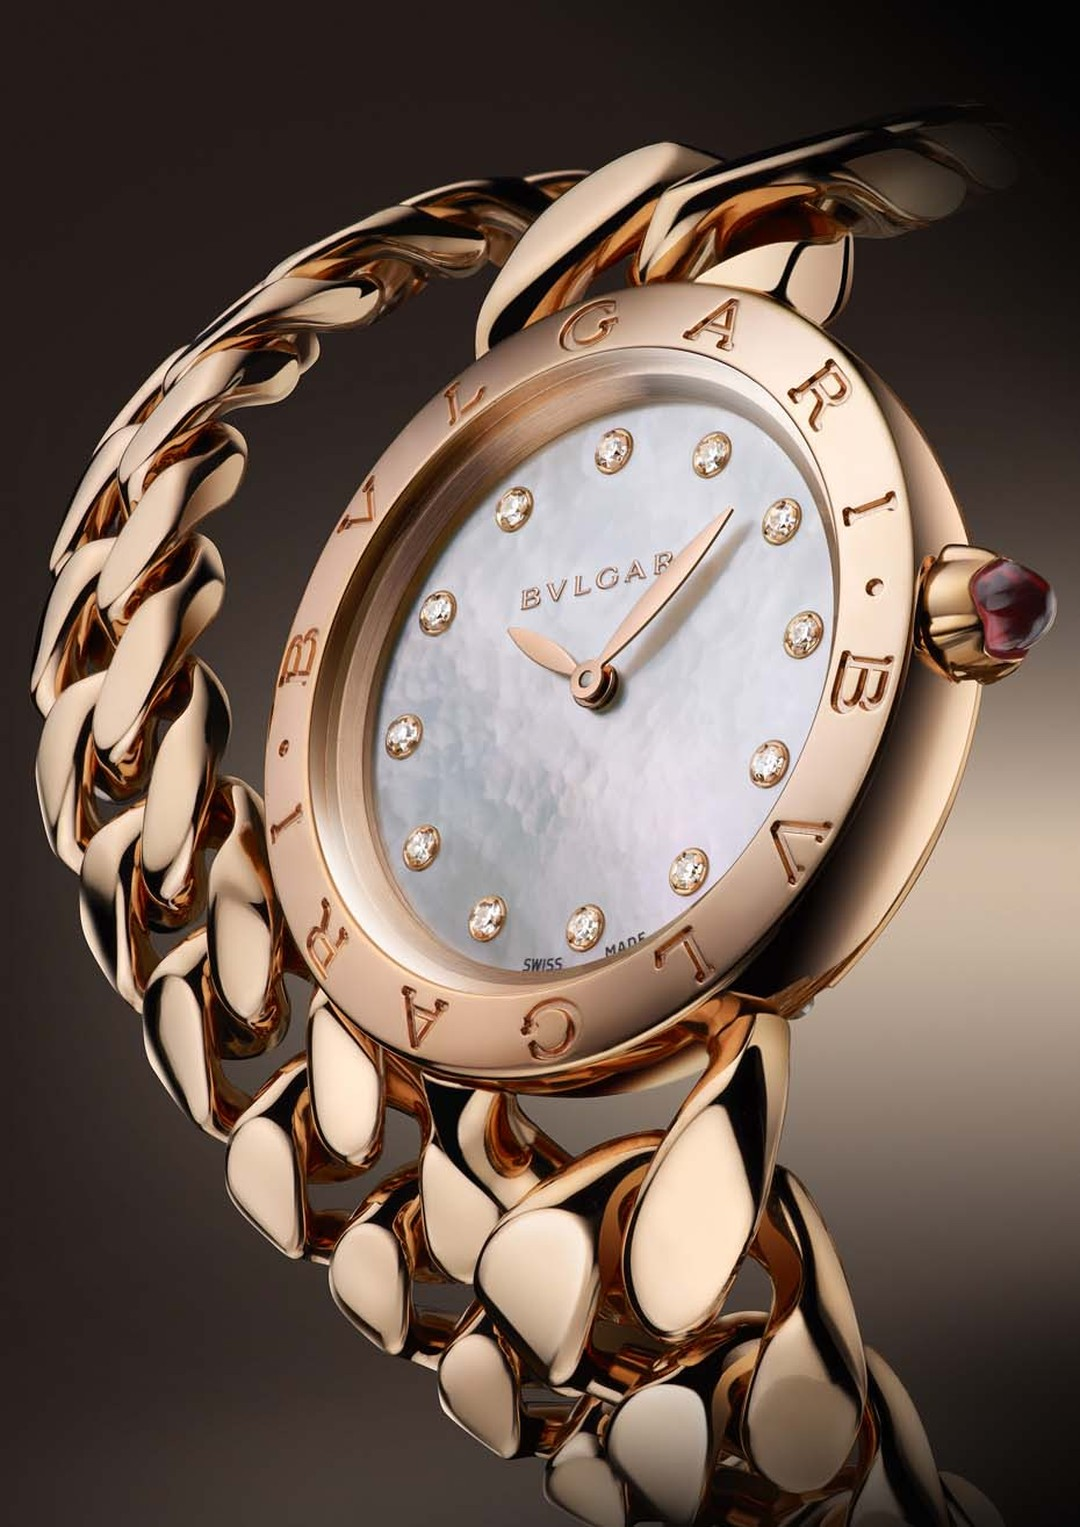 The new Bulgari Catene bracelet watch features a white mother-of-pearl dial set with 12 brilliant-cut diamonds.